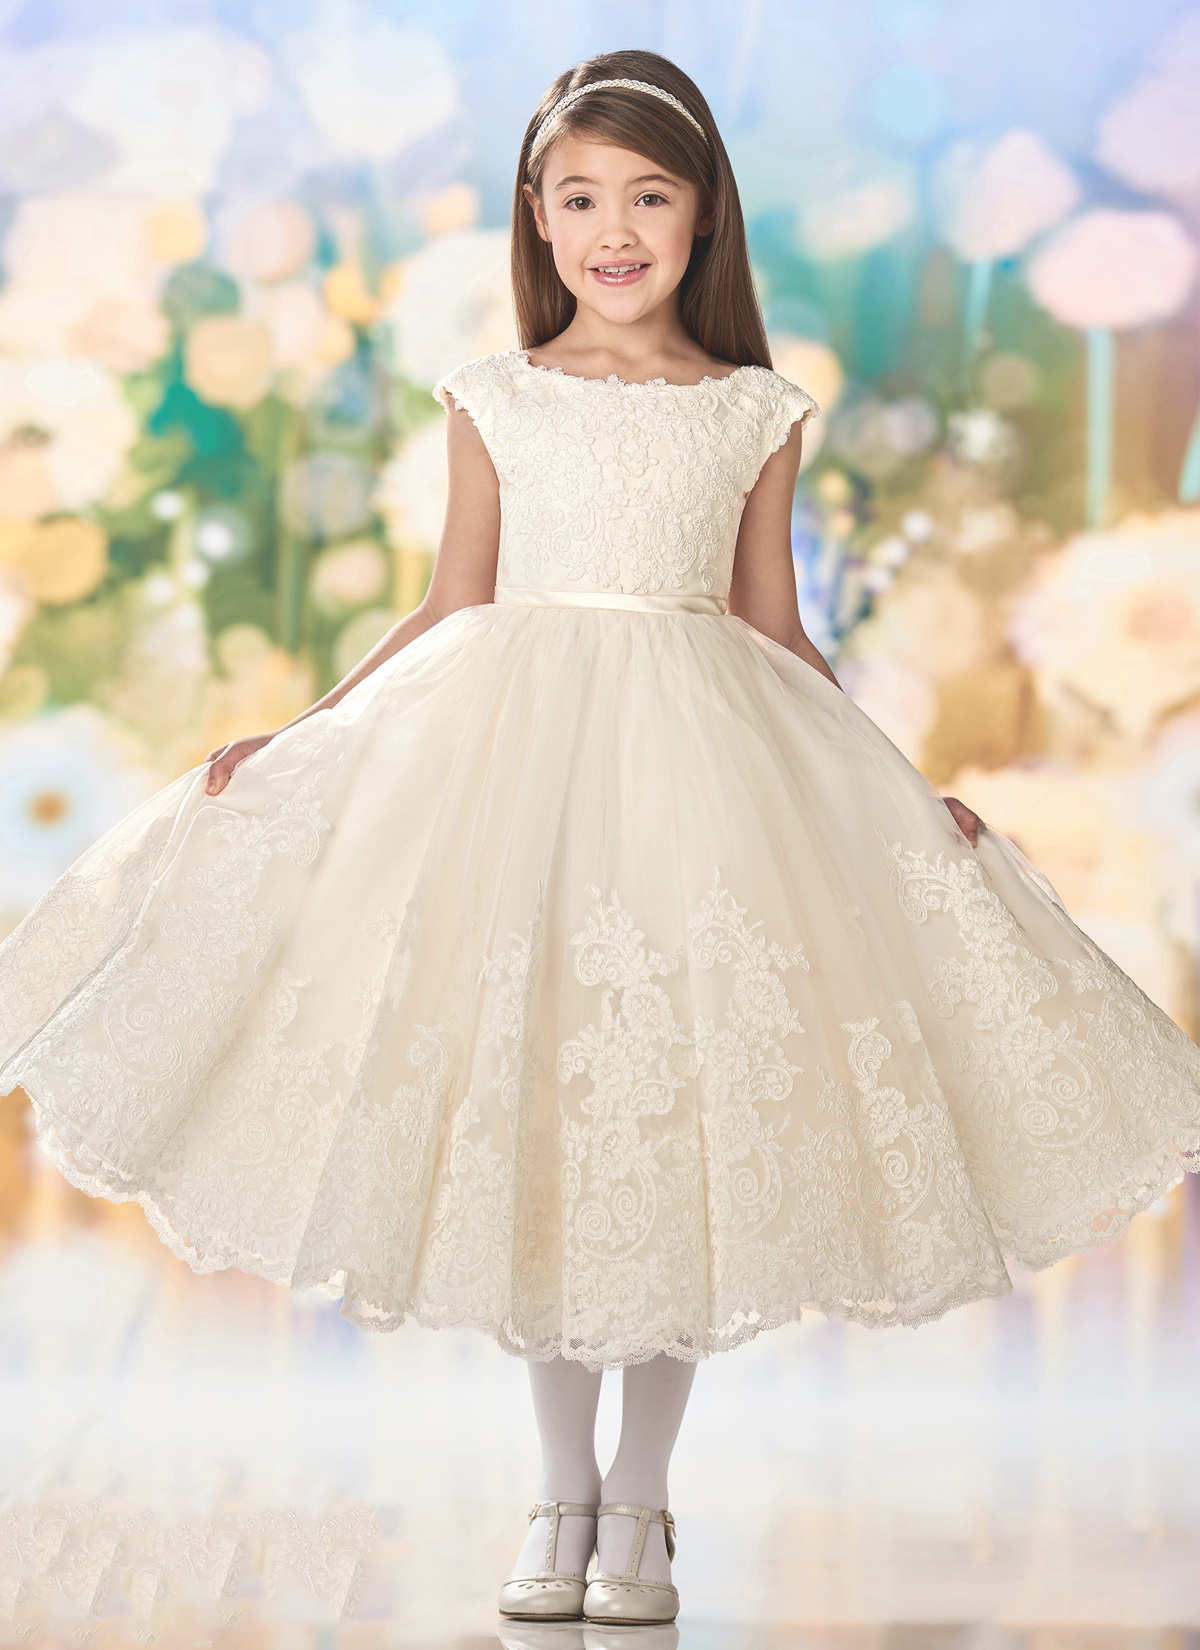 The flower girl dresses that'll make sure your whole wedding party is on point